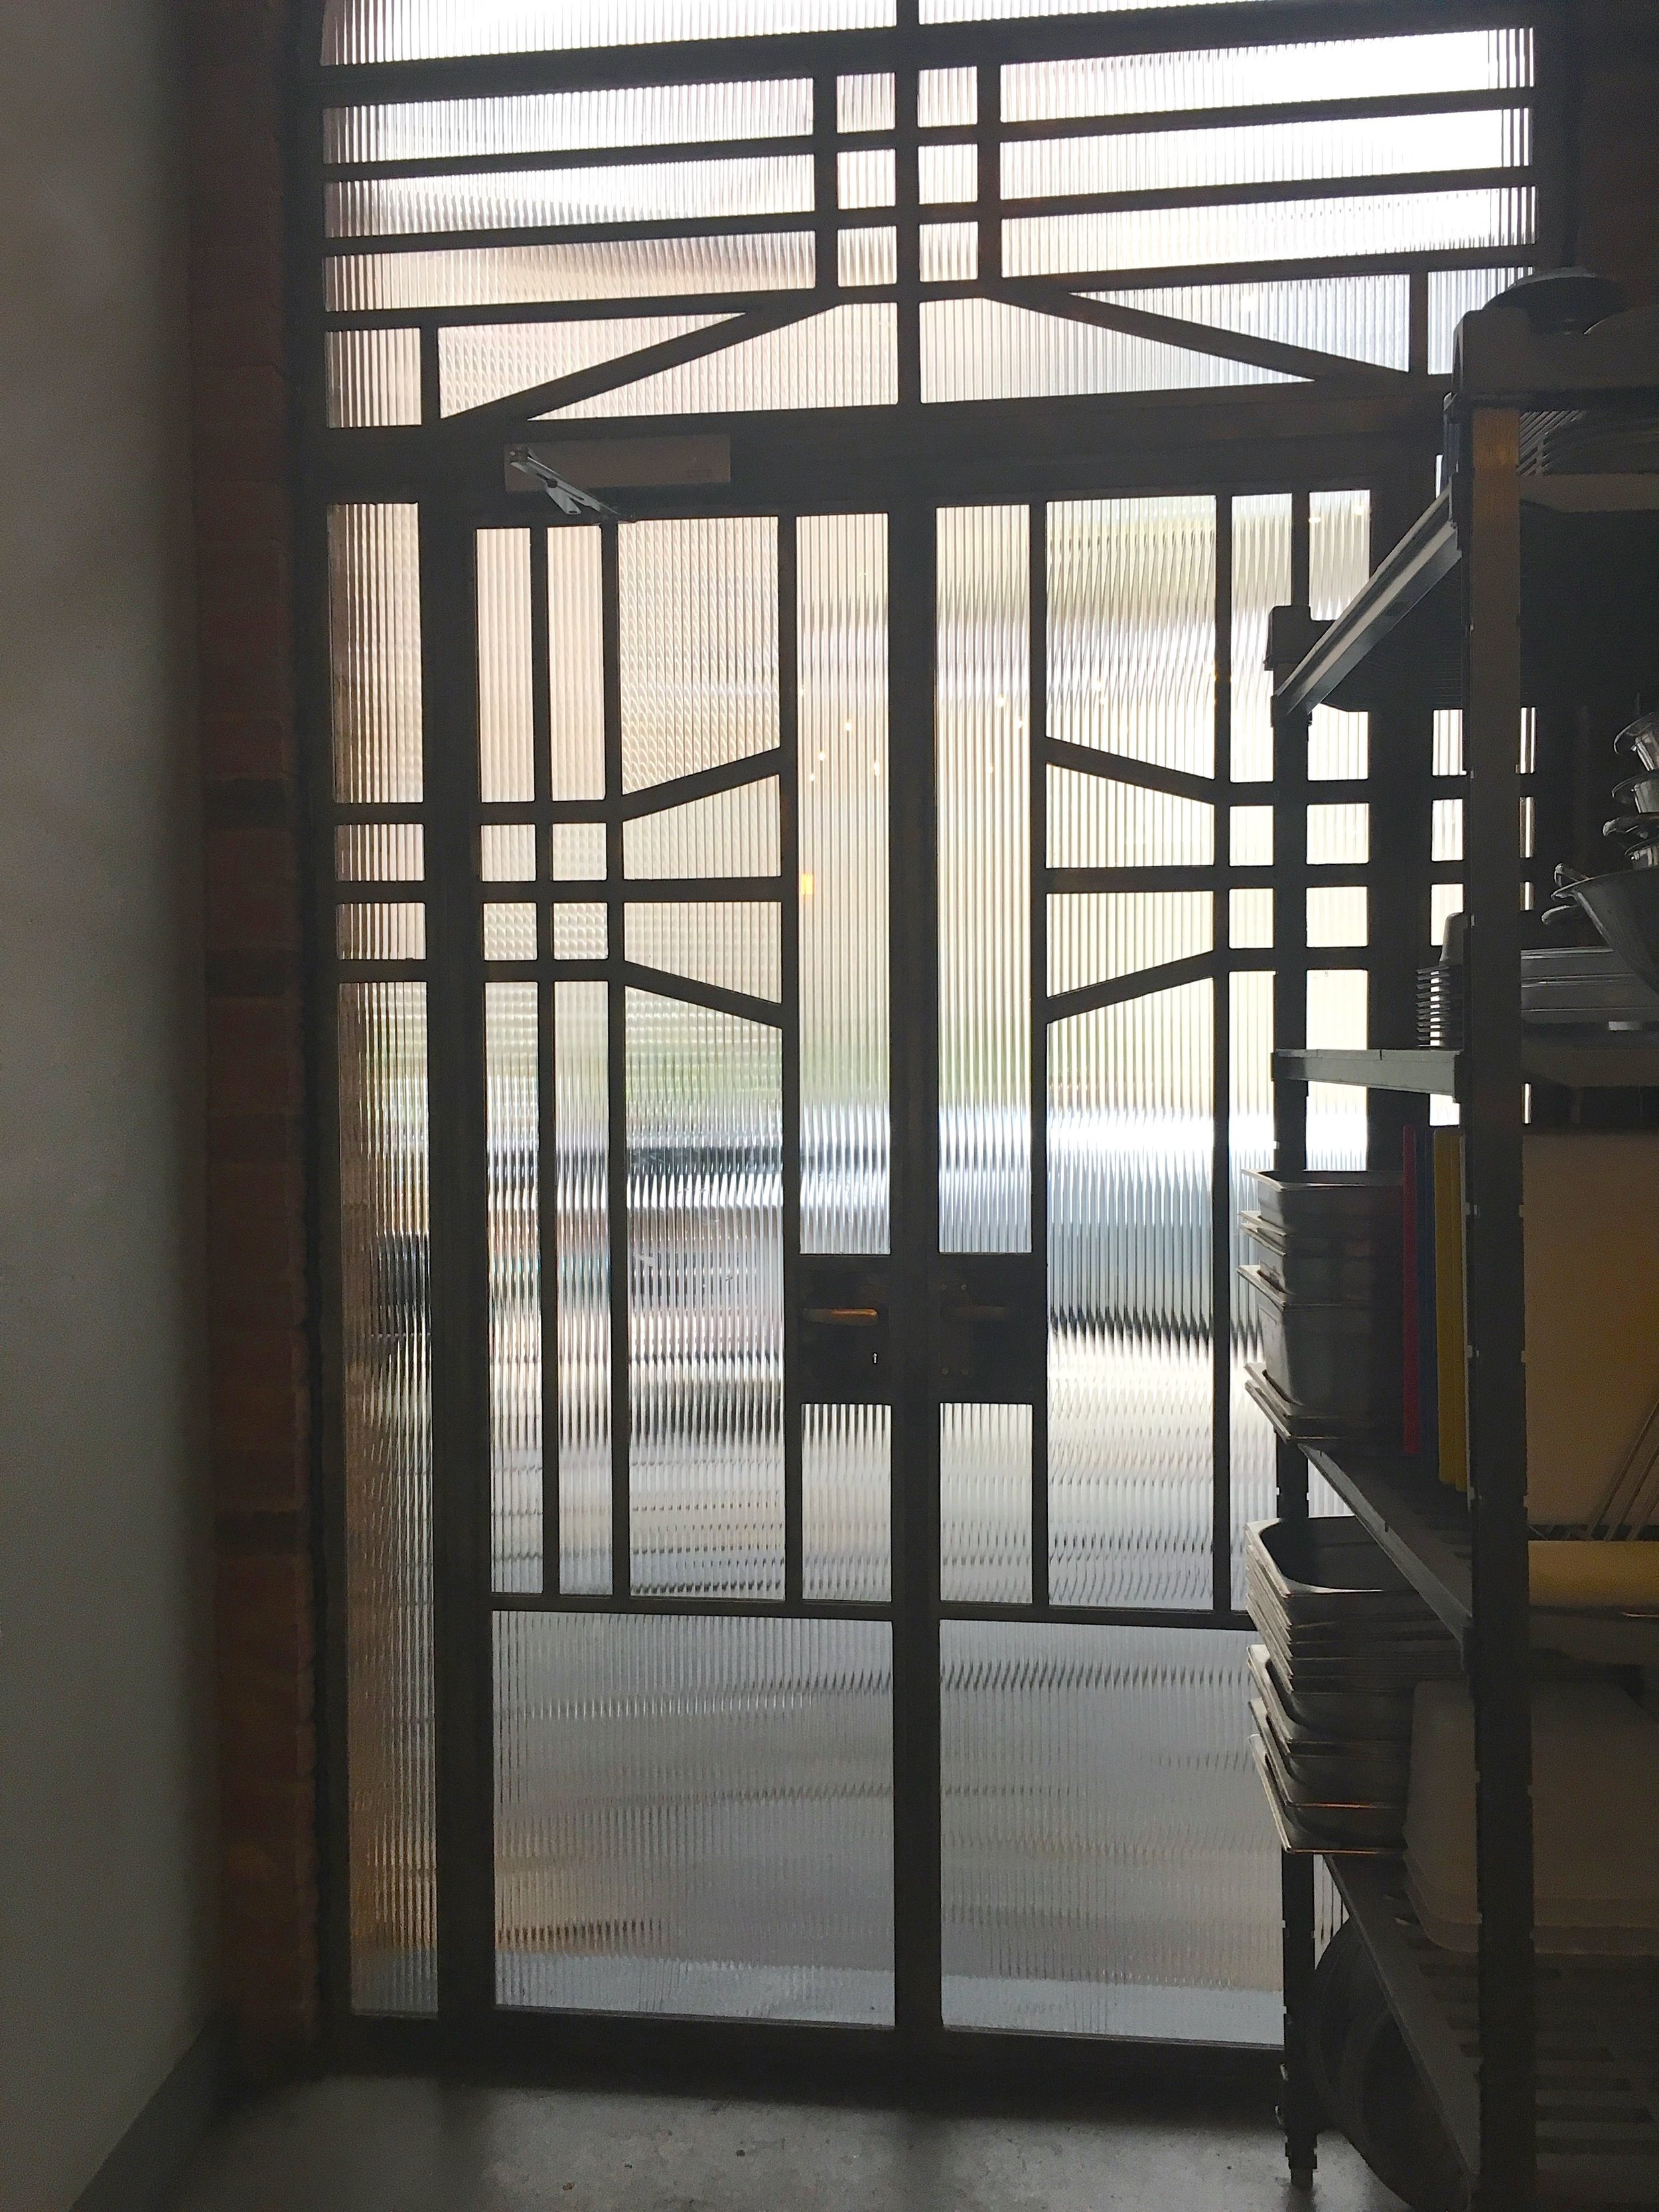 Fantastic crittall art-deco style doors as you approach the loos at El Pastor in Borough Market